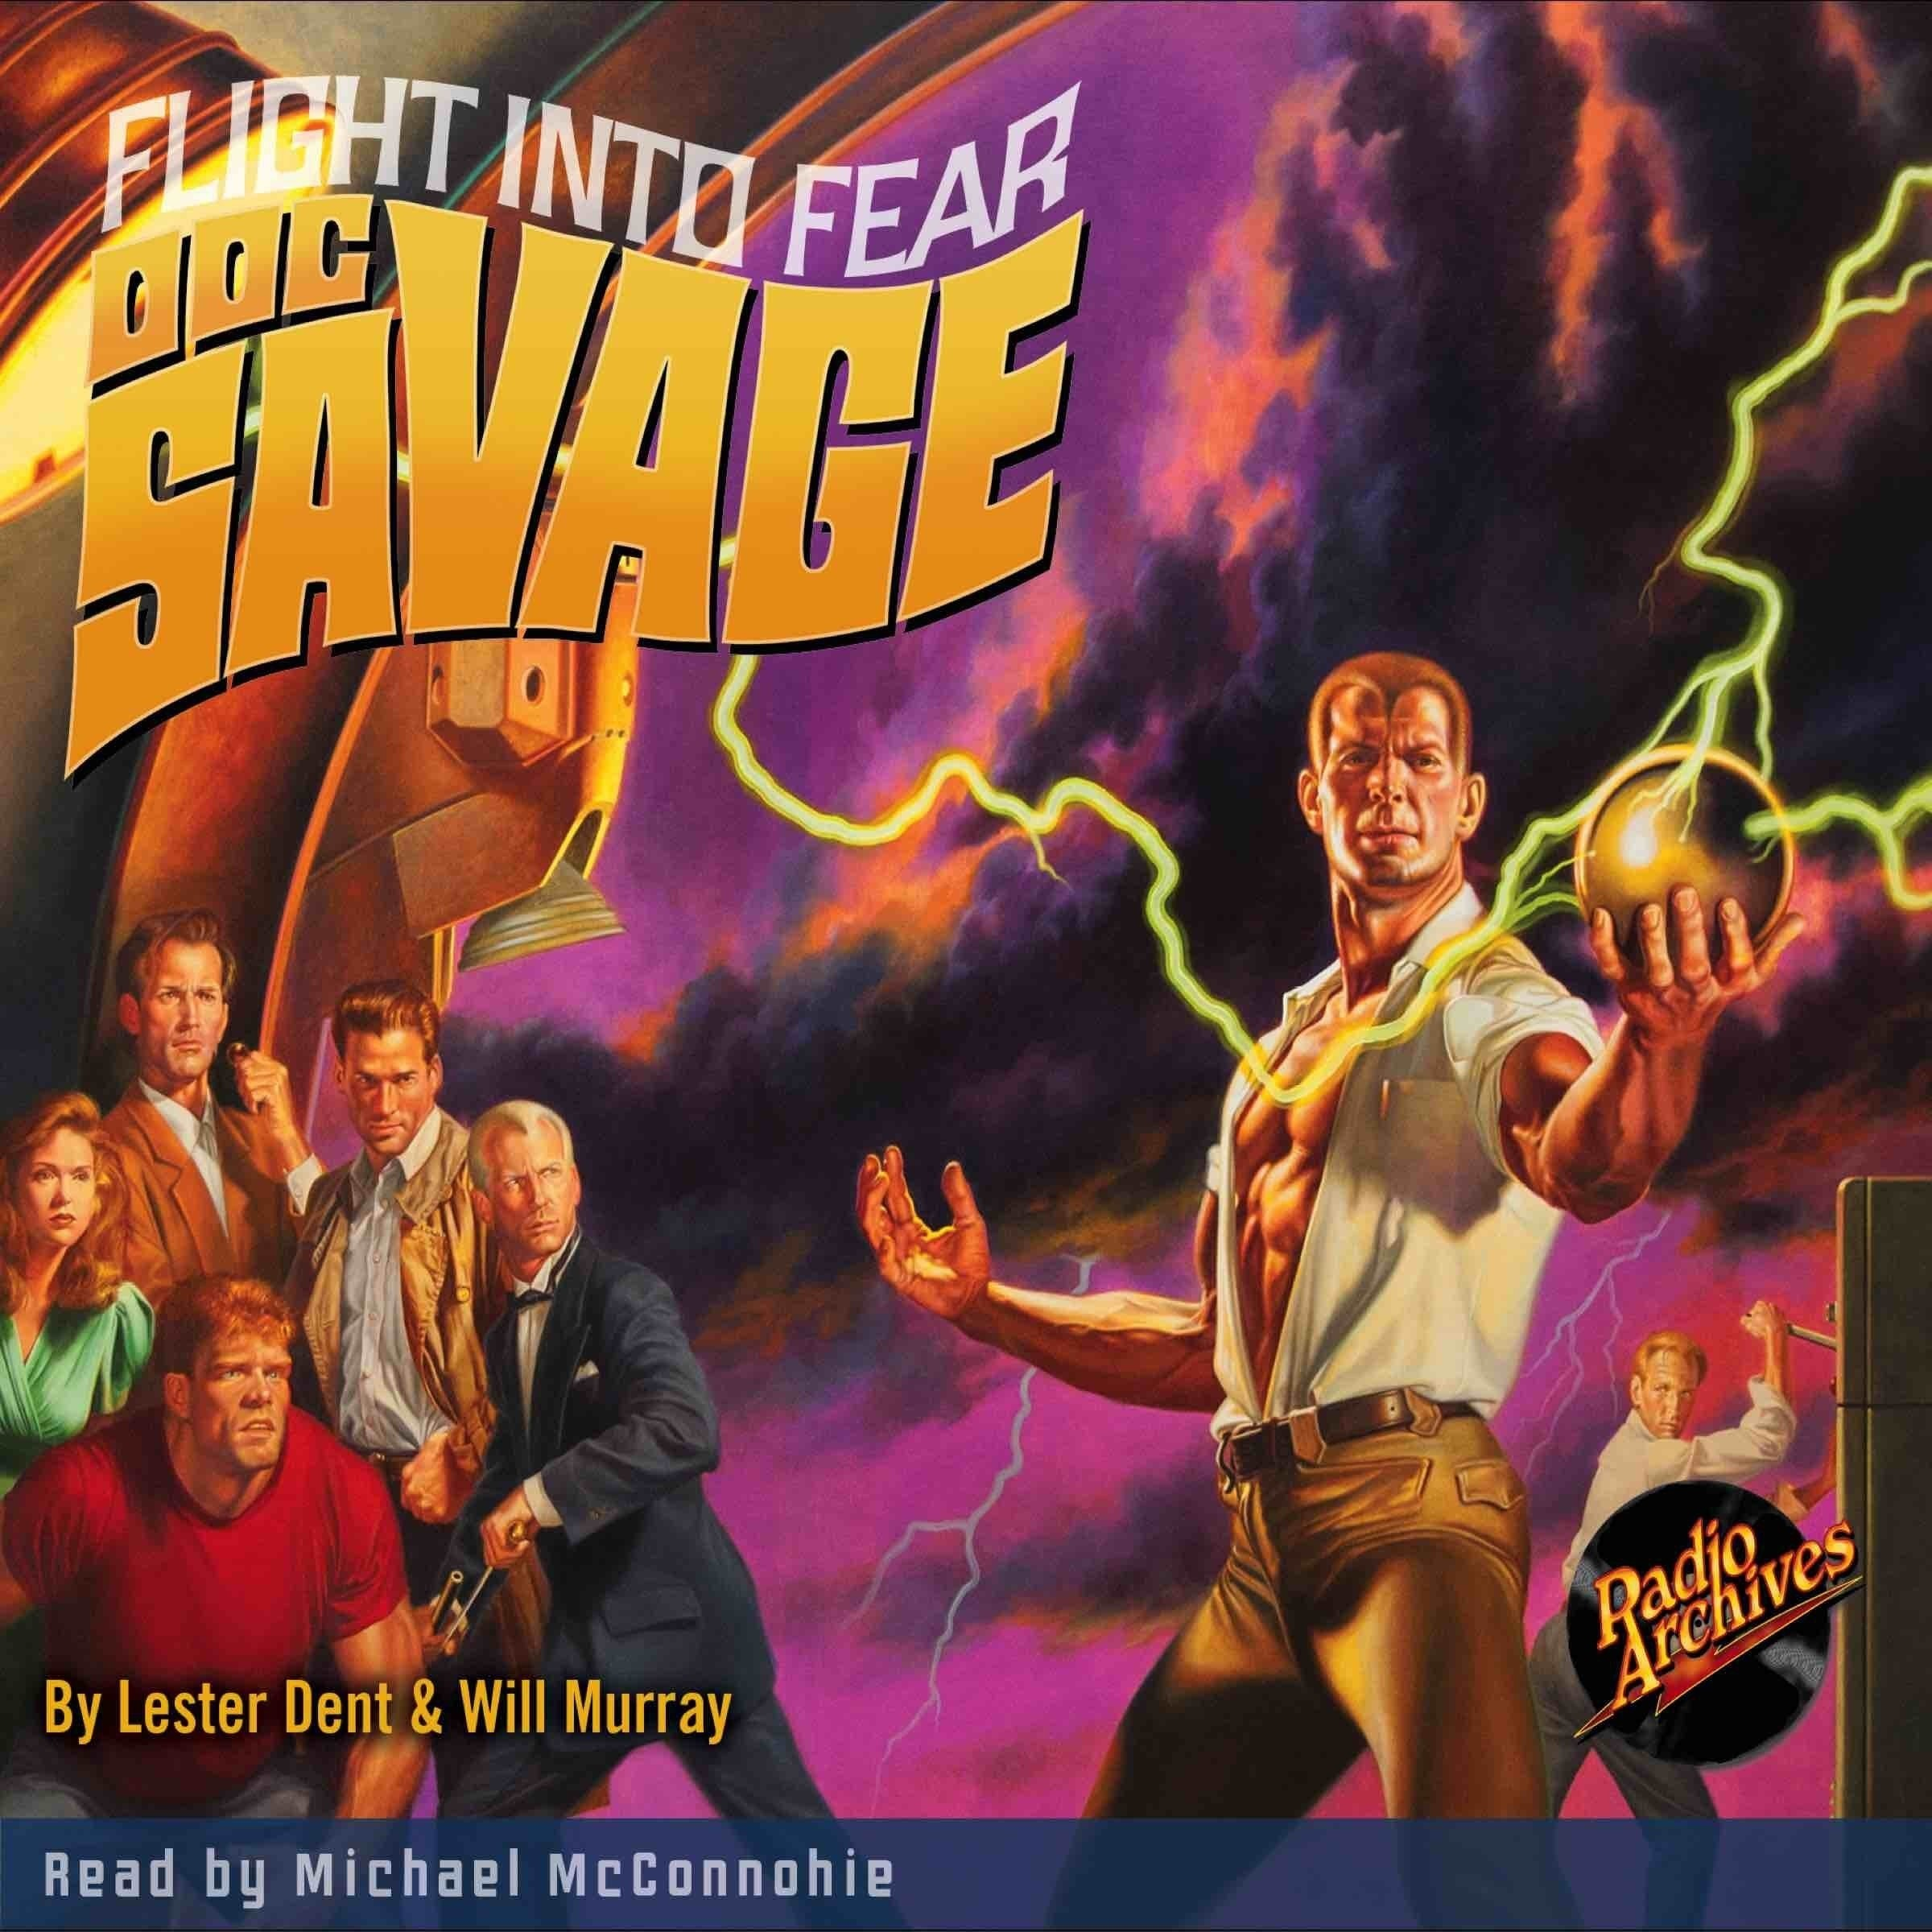 Printable Doc Savage #1: Flight Into Fear Audiobook Cover Art